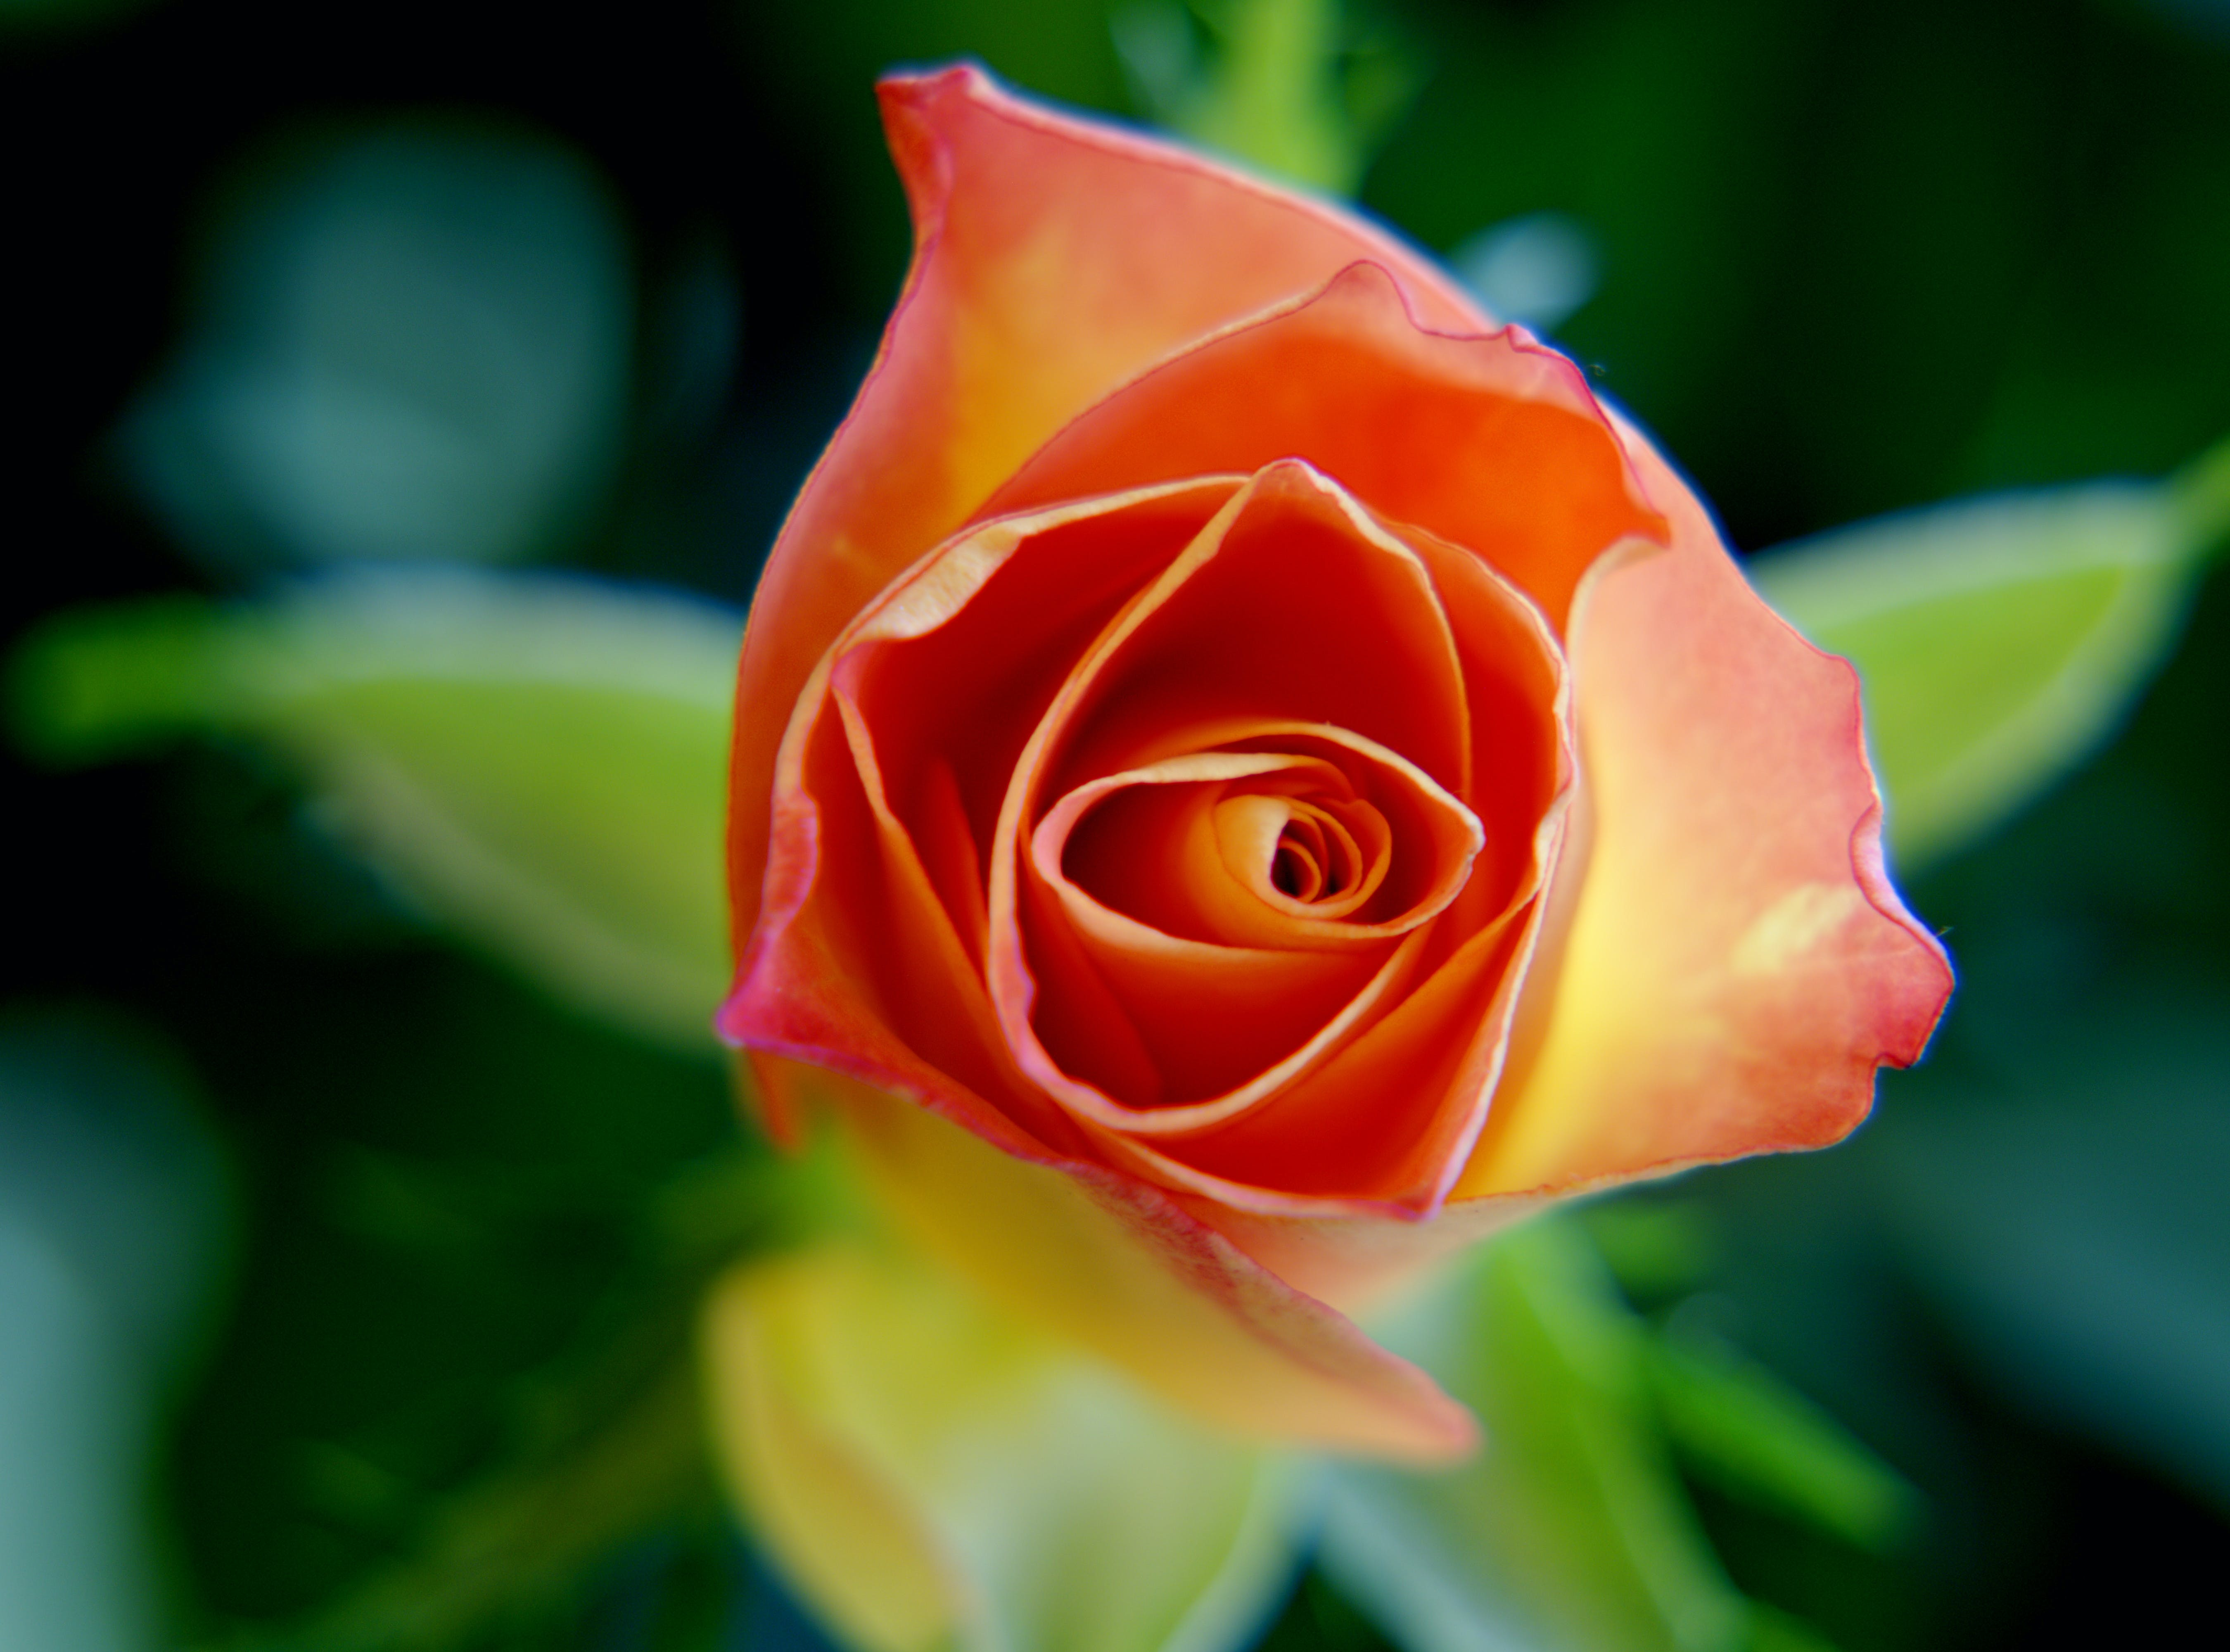 Selective Photo of Orange and Yellow Rose